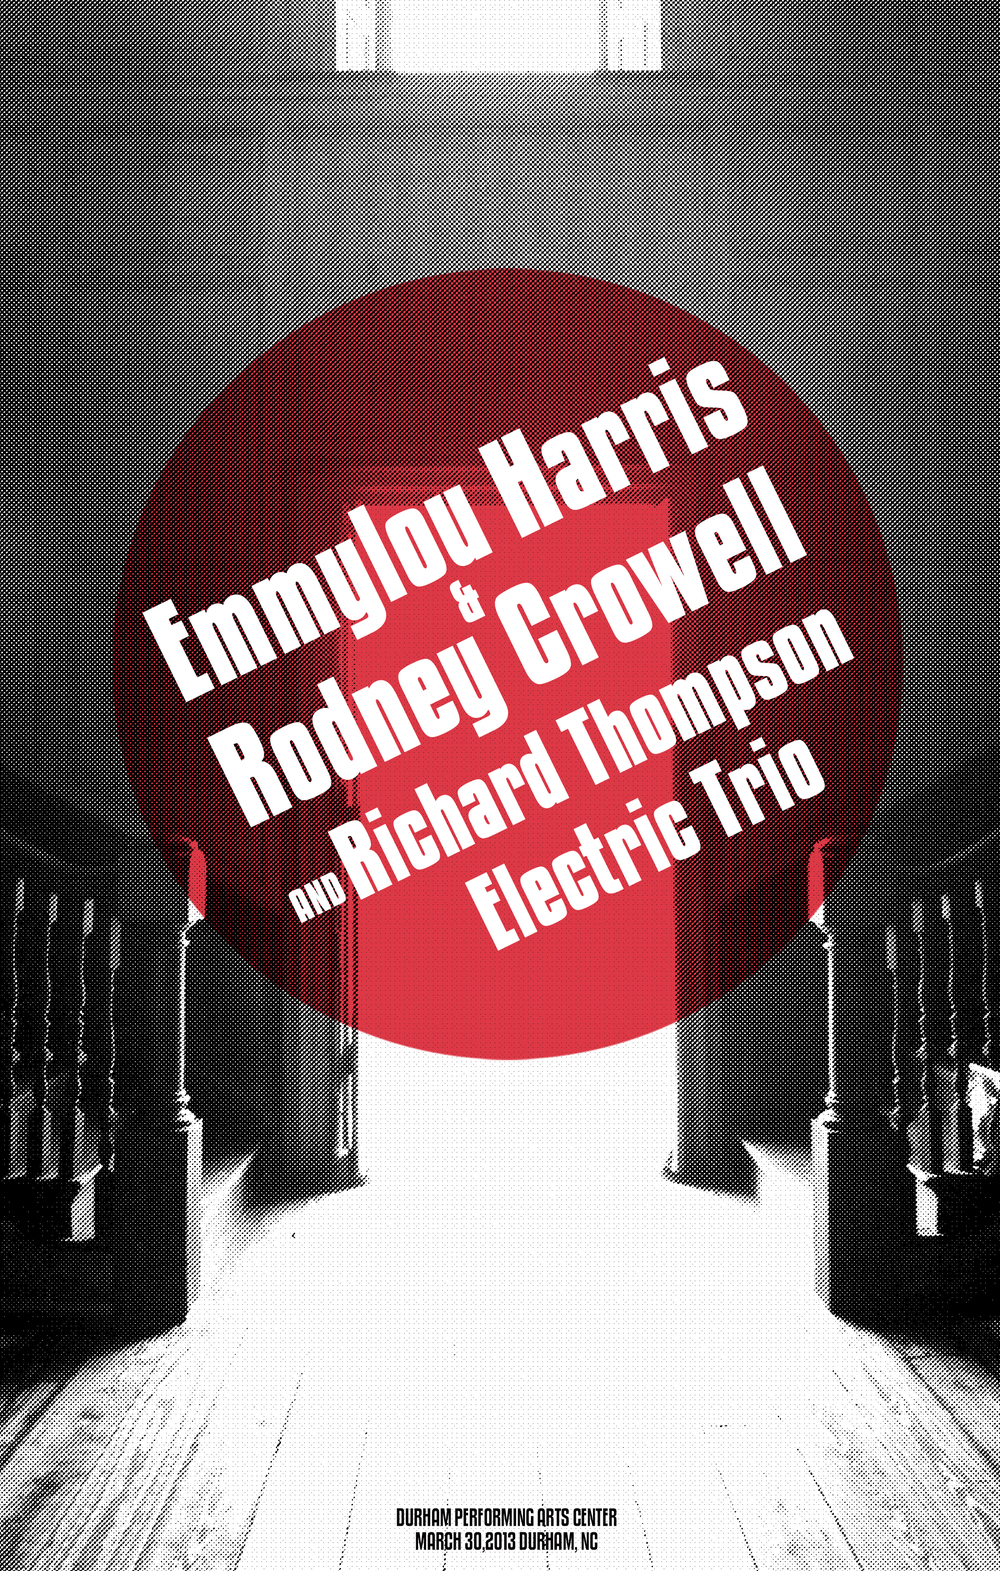 Emmylou Harris, Rodney Crowell, and Richard Thompson Electric Trio